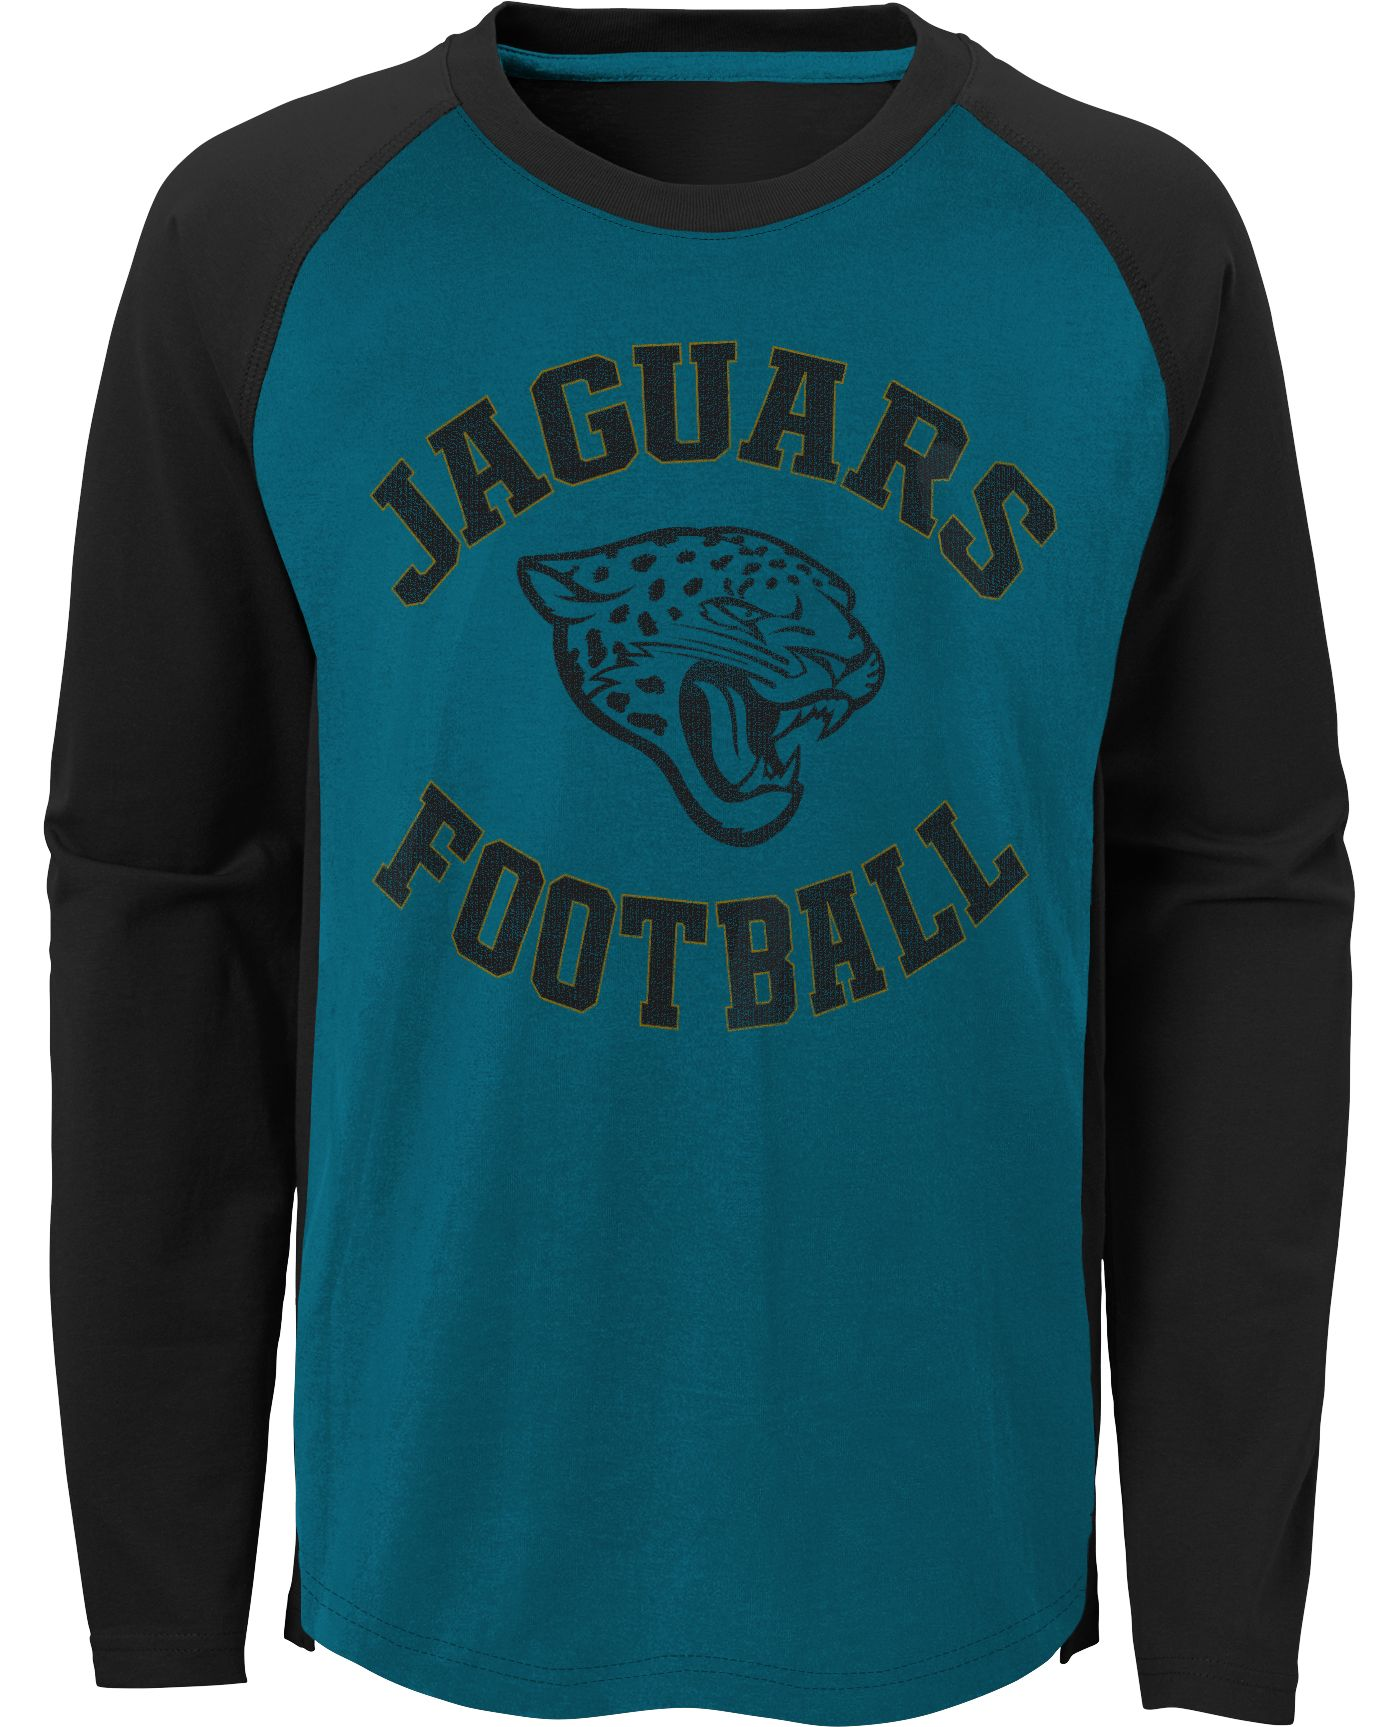 NFL Team Apparel Youth Jacksonville Jaguars Air Raid Long Sleeve Green Shirt